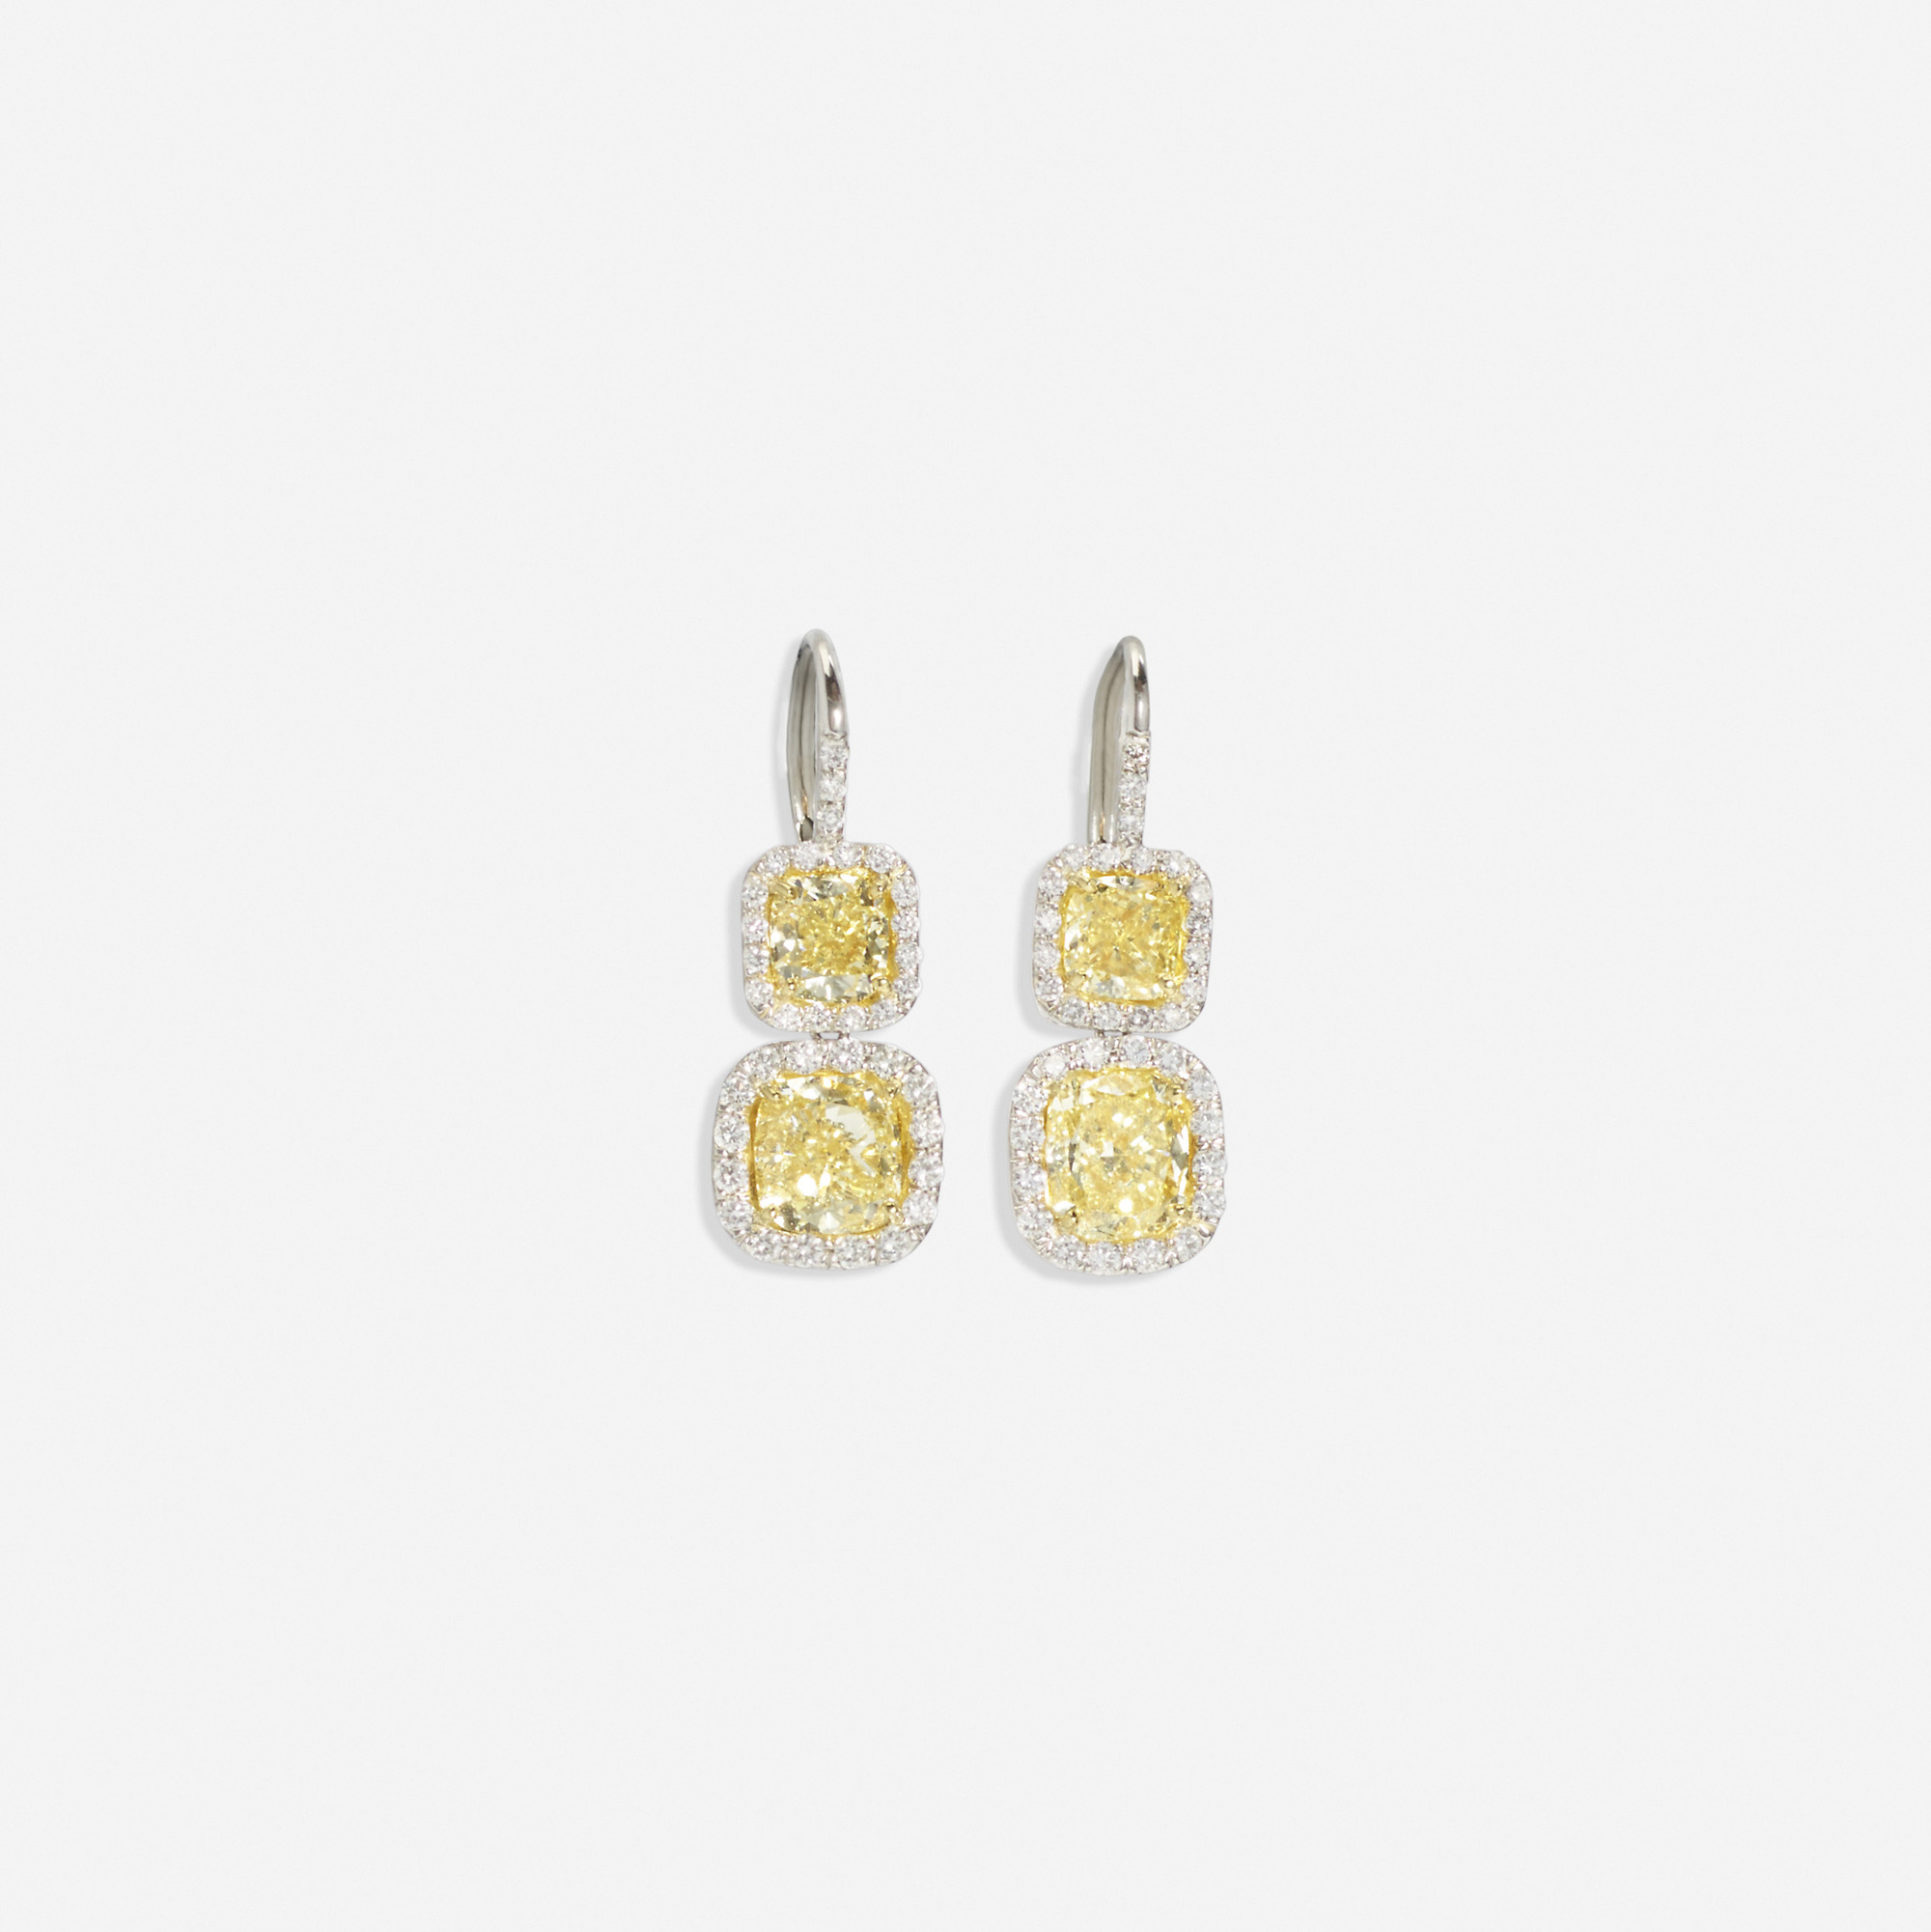 117:  / A pair of platinum, gold and yellow diamond earrings (1 of 1)